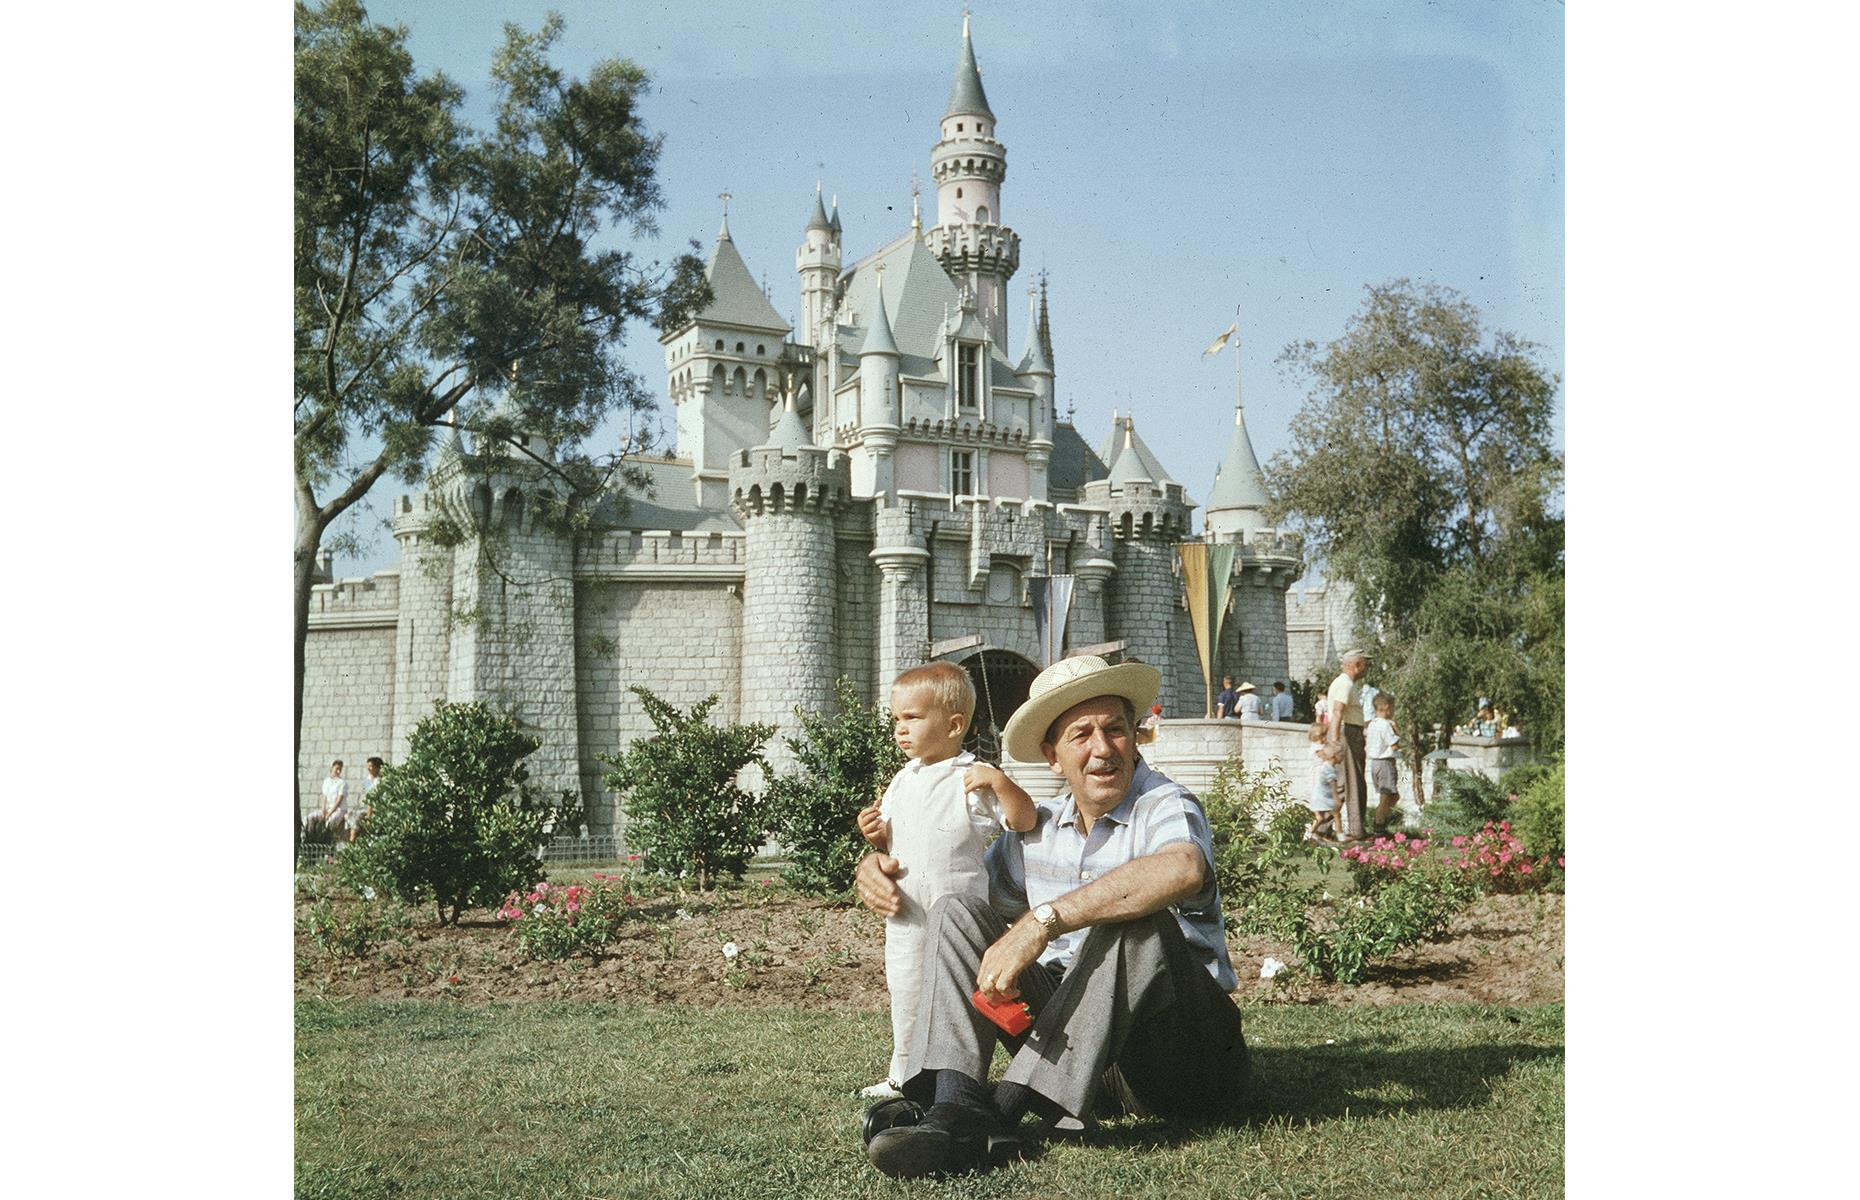 Slide 12 of 38: Disneyland was a family affair from the very beginning – and that included Walt Disney's own clan too. This heartwarming photo was snapped circa 1955, not long after the park's opening, and shows Disney with his little grandson on a grassy lawn before Sleeping Beauty Castle. You can spot other families in the background enjoying the majestic attraction too.